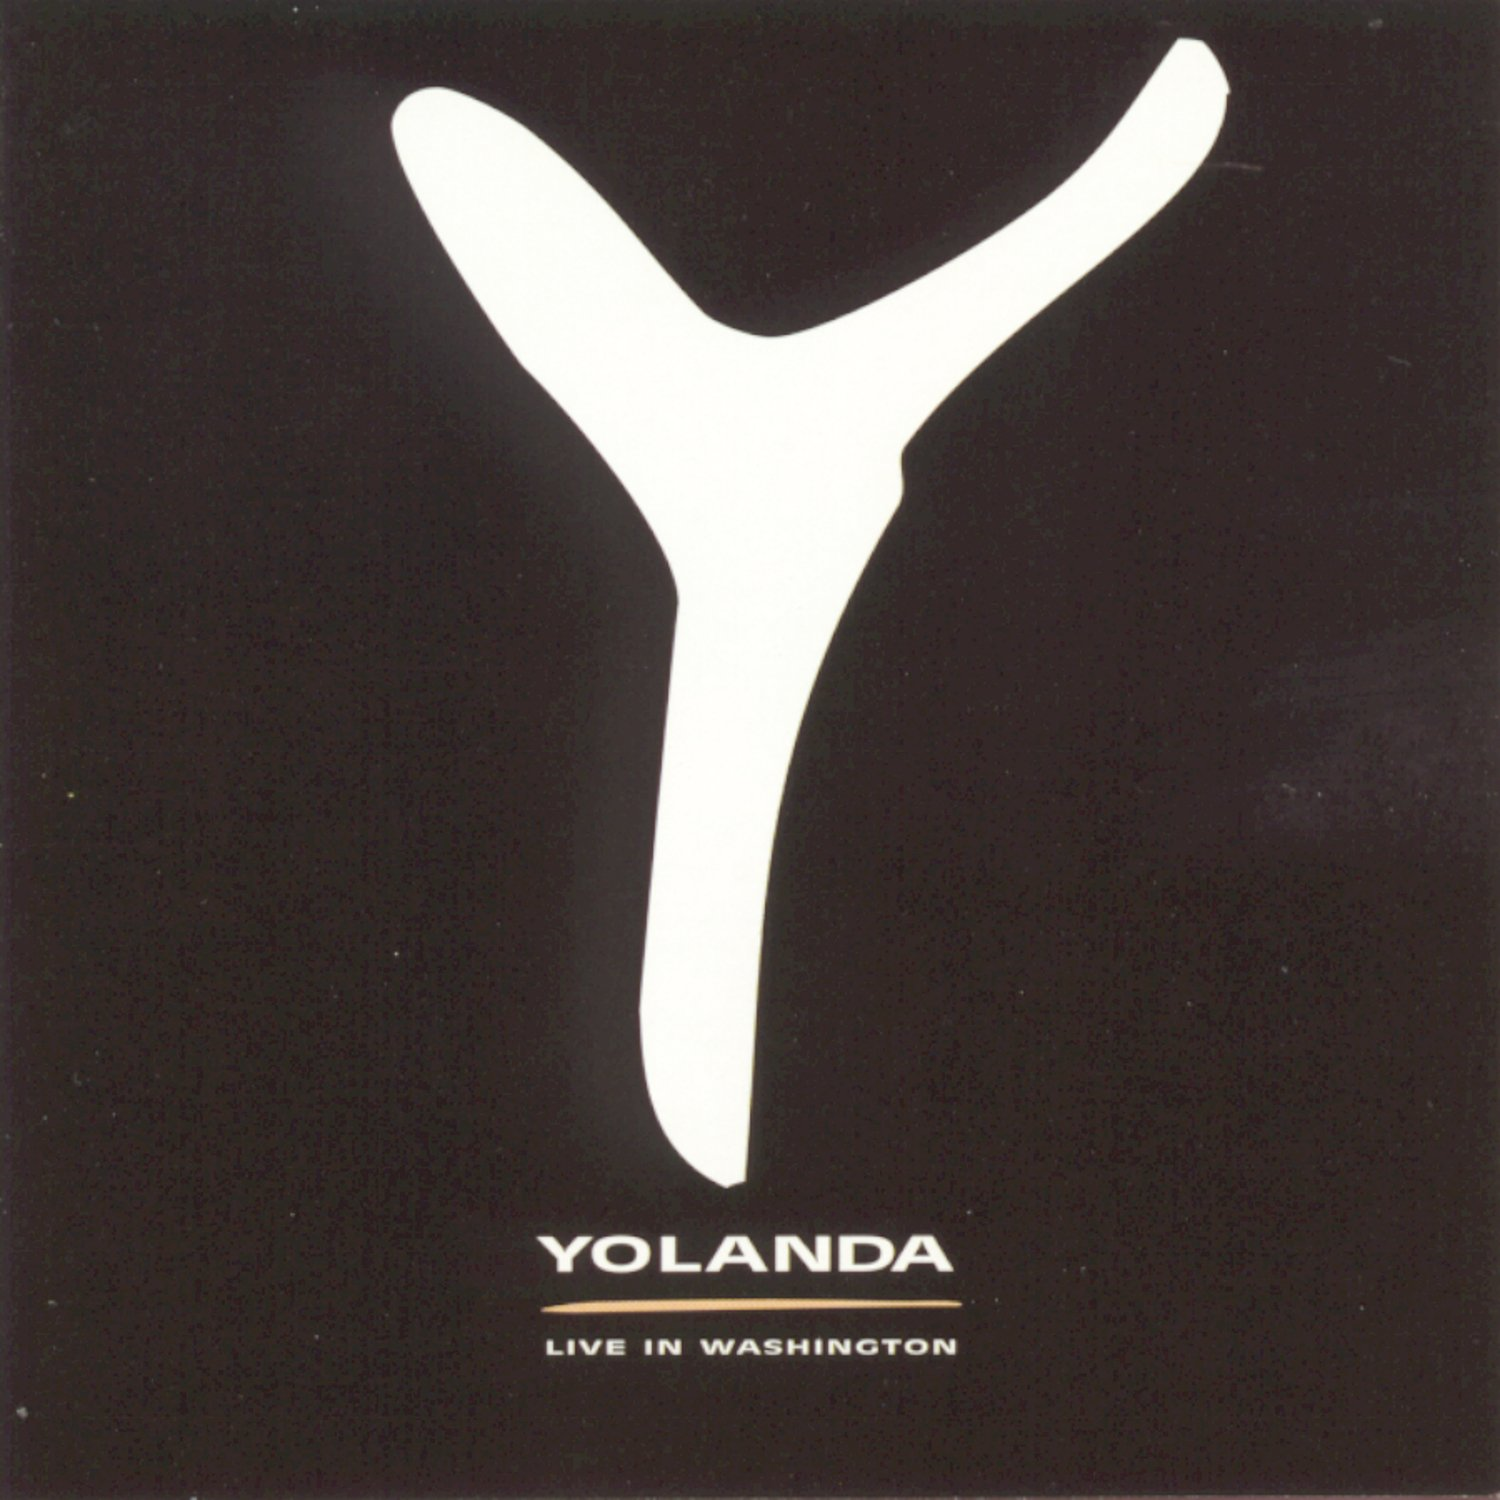 Yolanda: Live in Washington by Provident Distribution Group